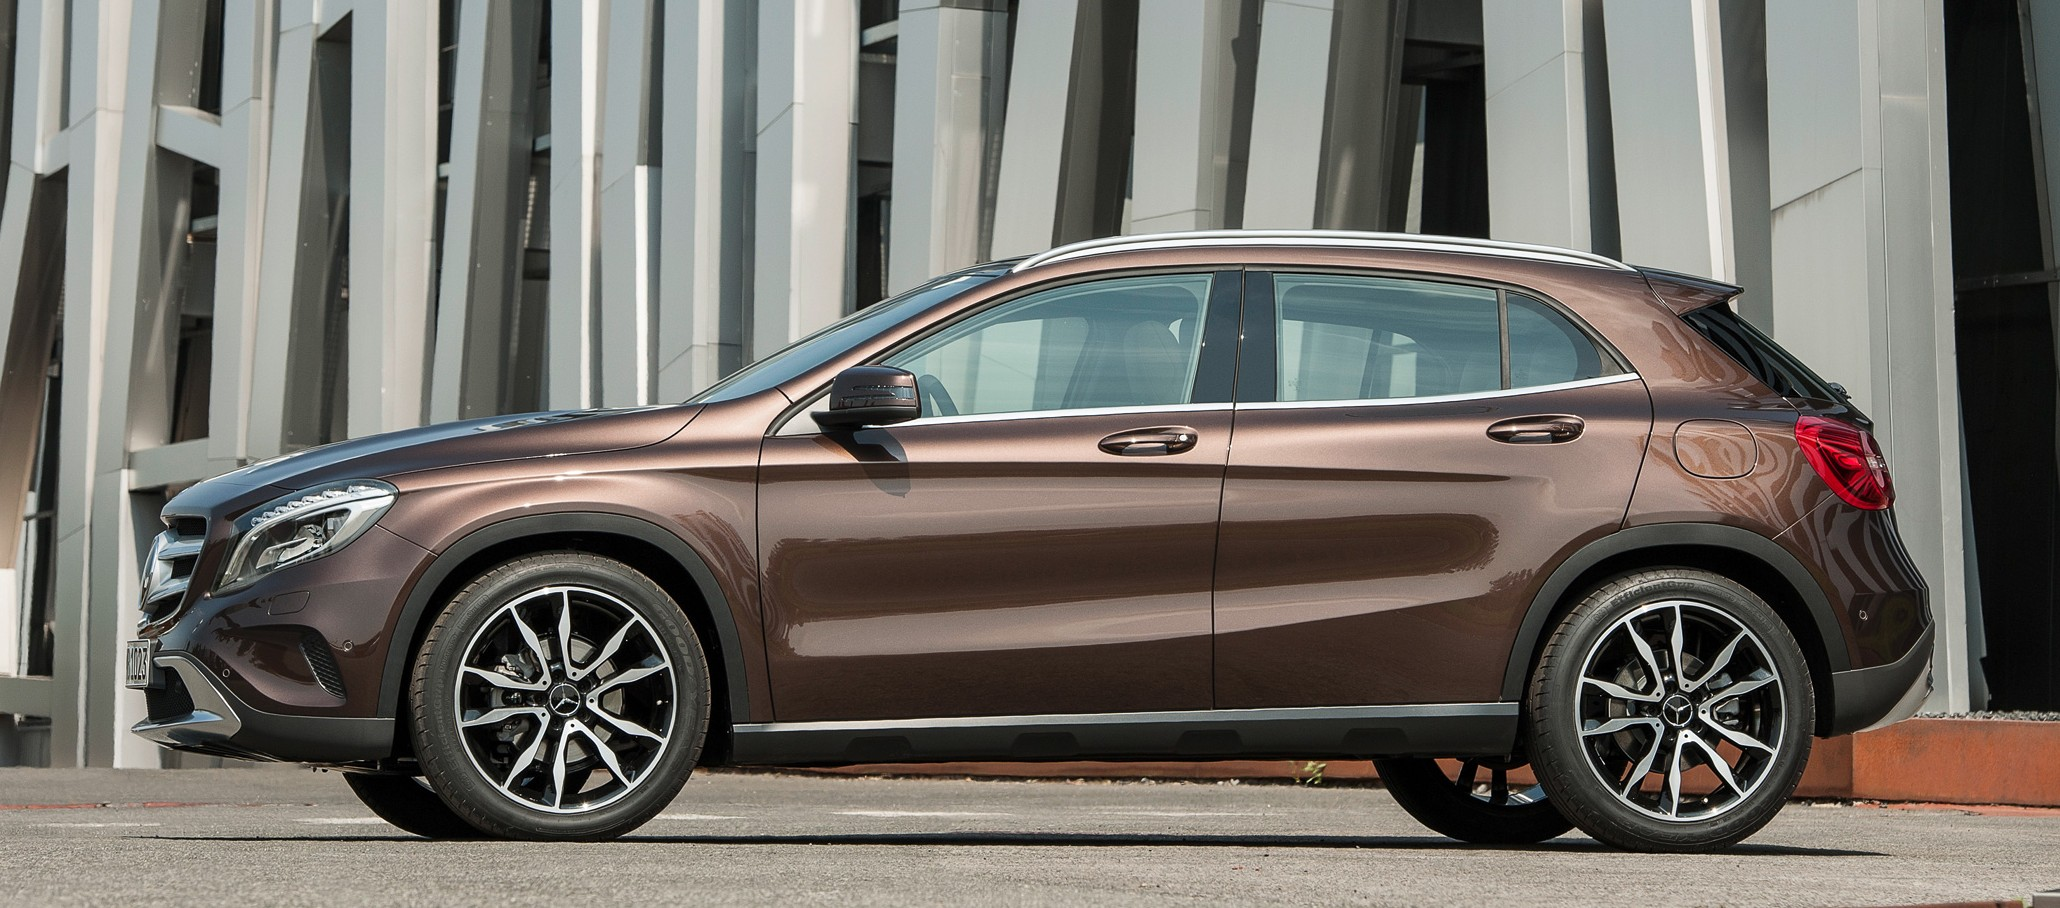 Mercedes benz gla full details videos and gallery image for Mercedes benz complaint department